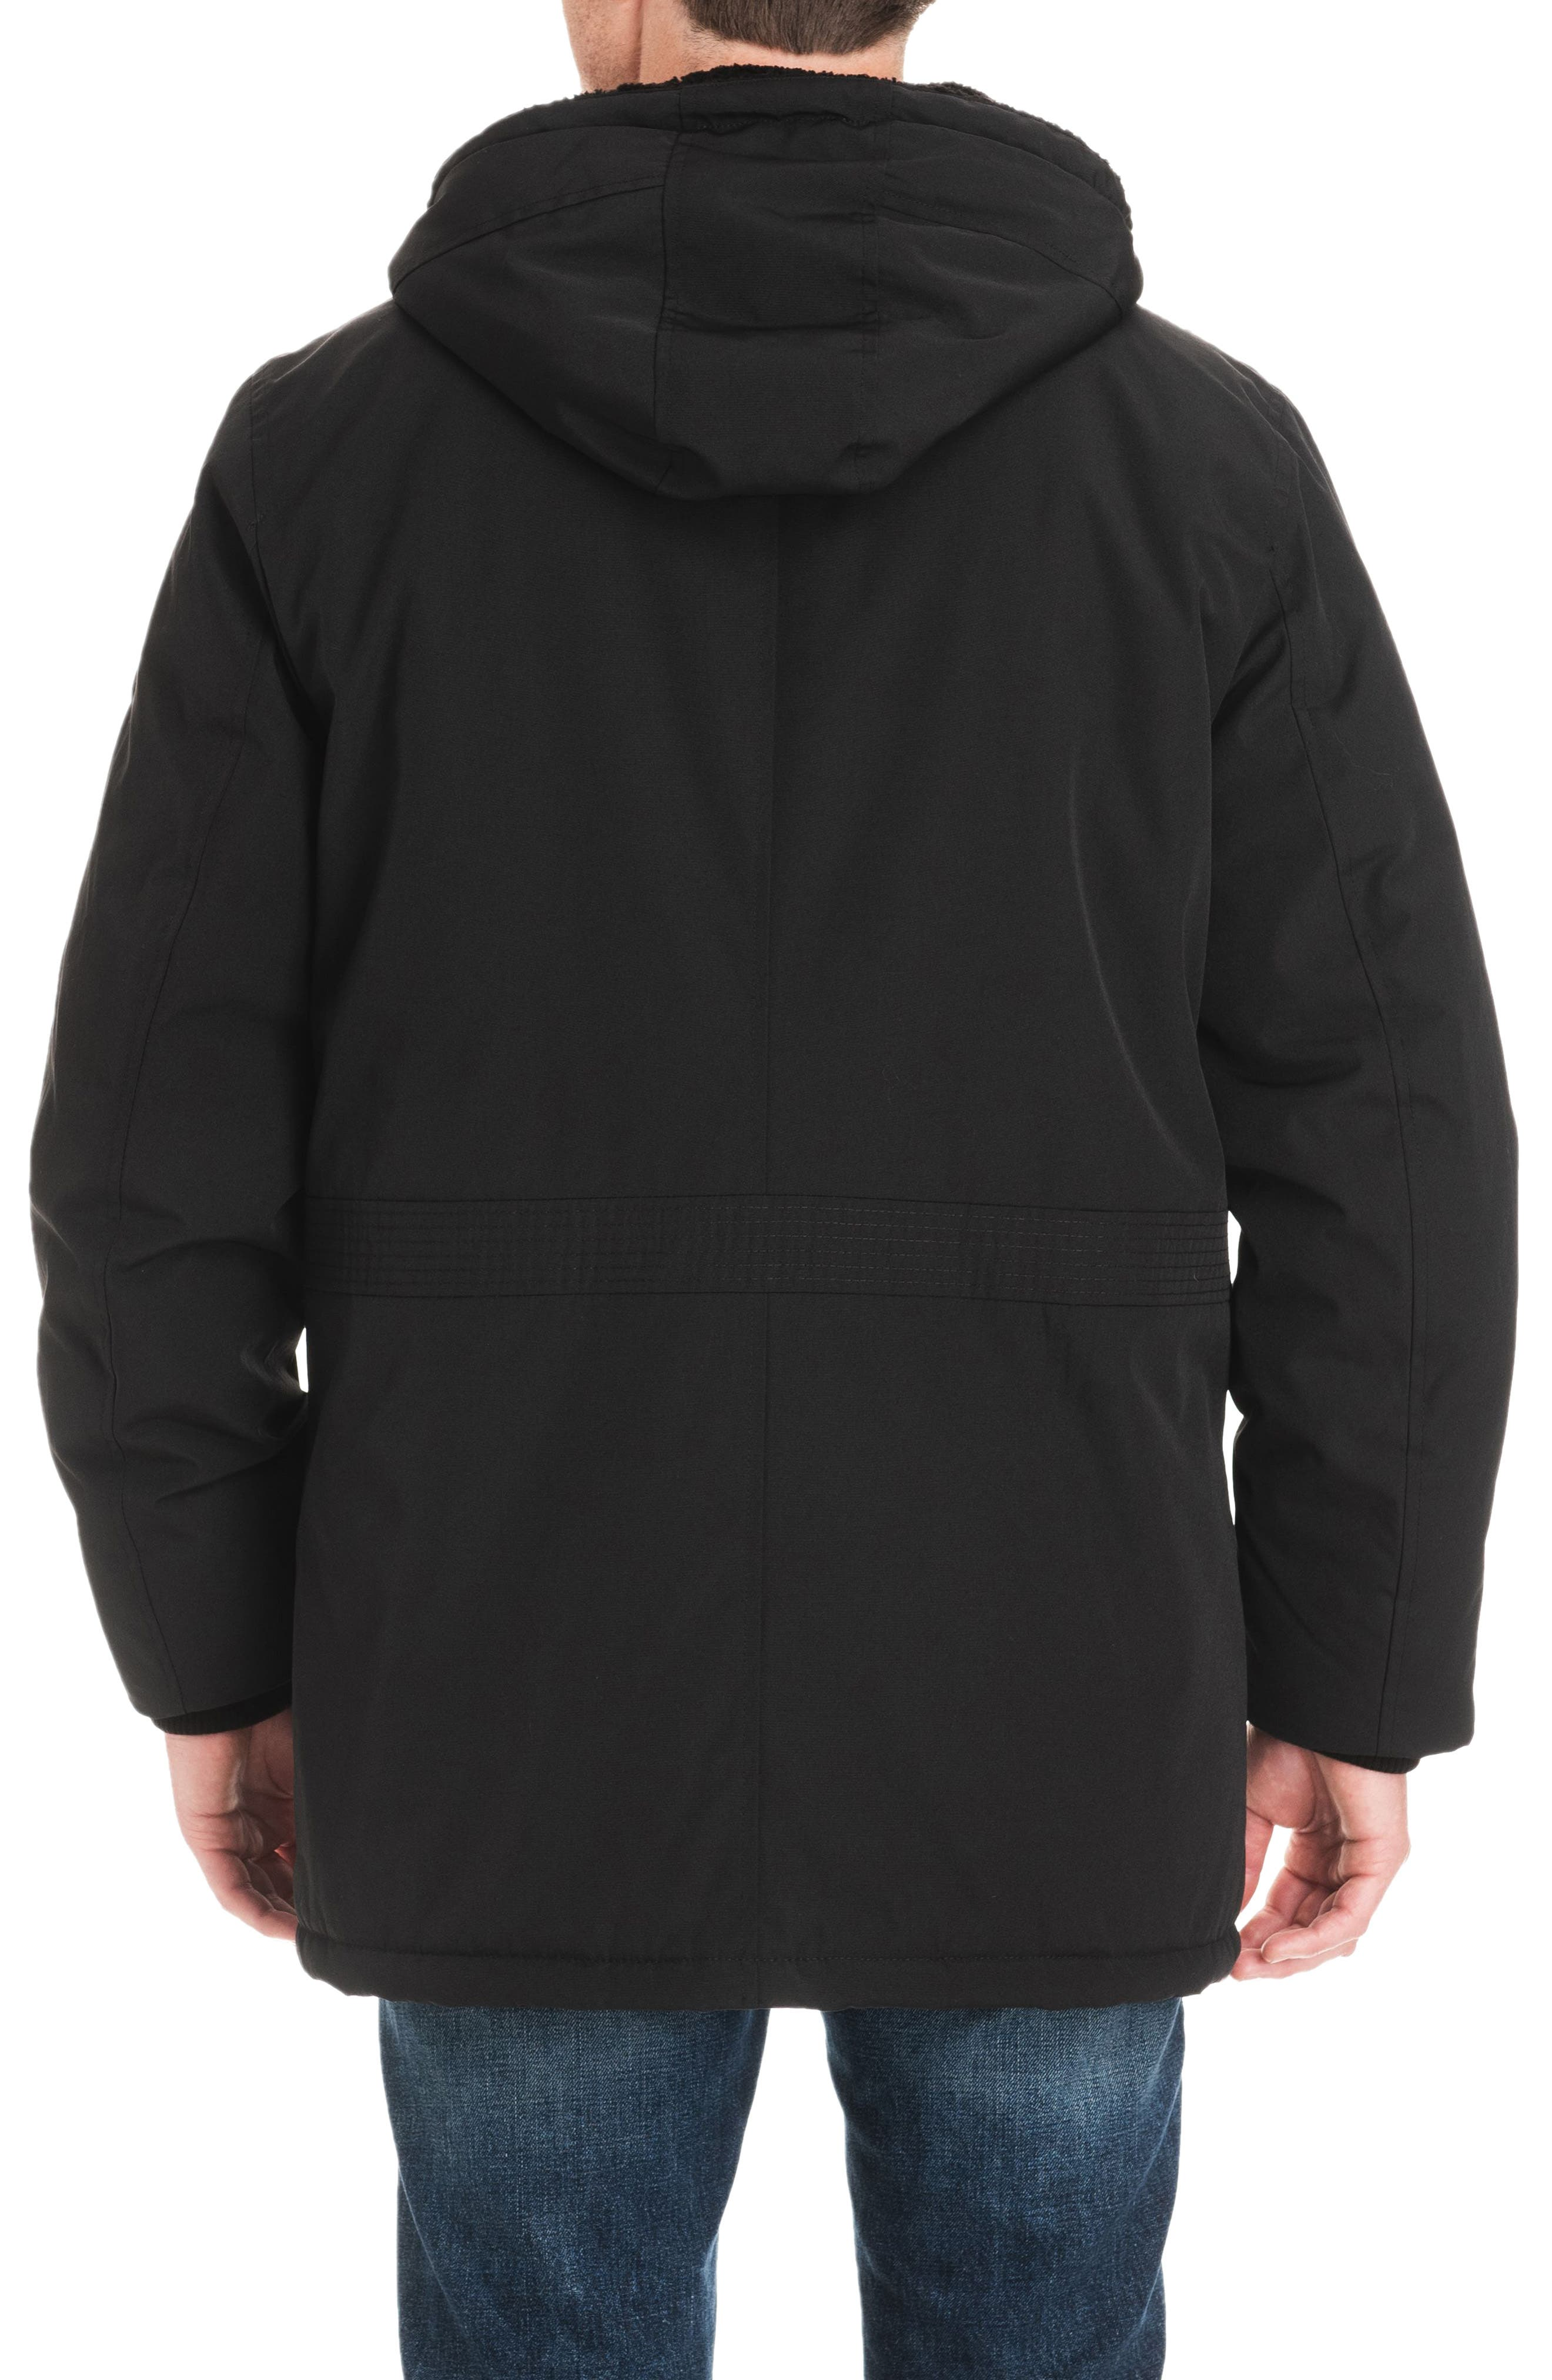 Lafayette Water Resistant Coat with Faux Shearling Lining,                             Alternate thumbnail 2, color,                             BLACK